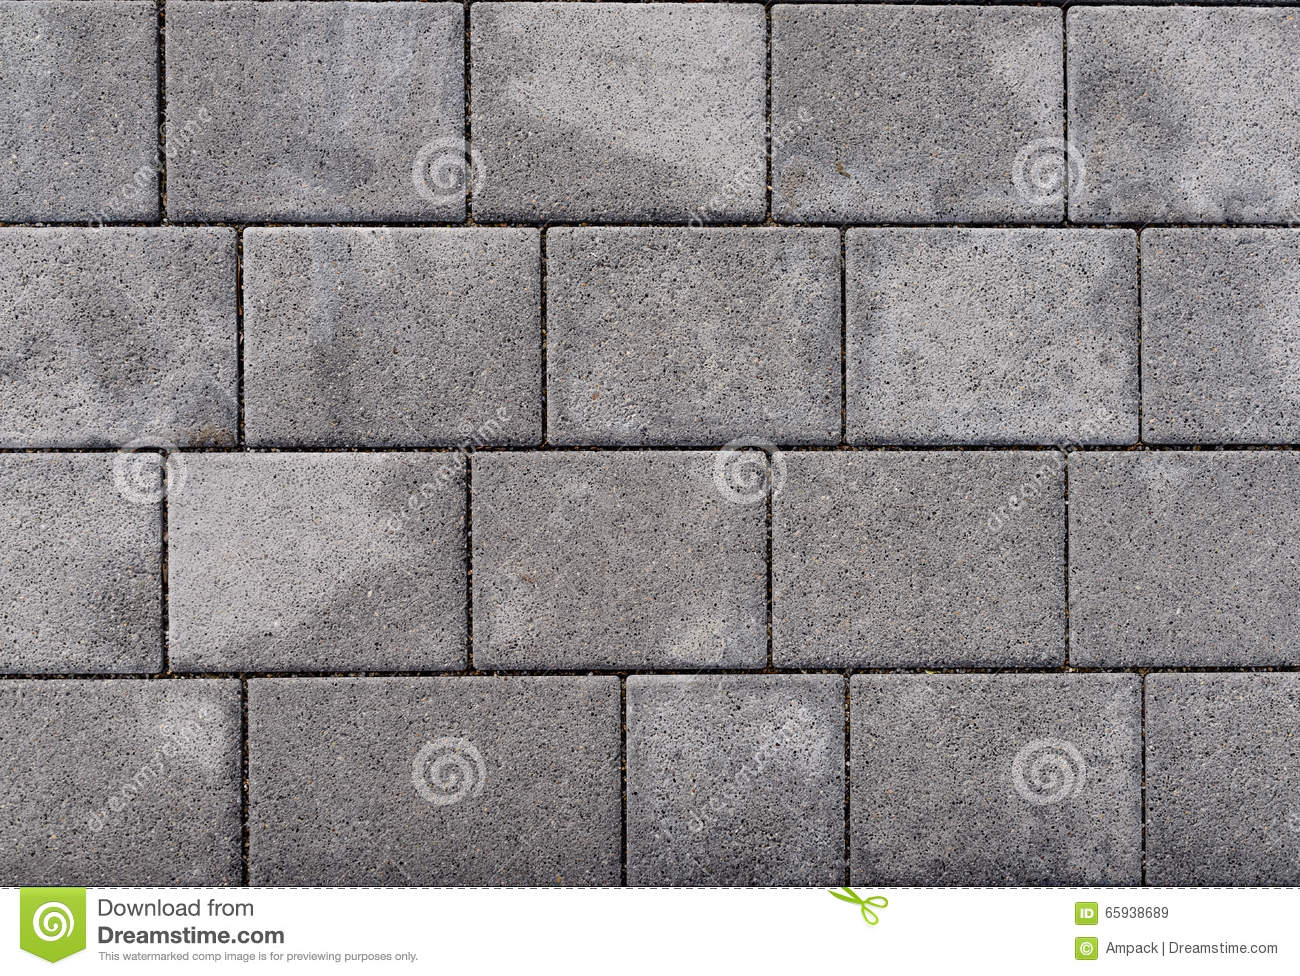 Outdoor white grey concrete block floor background and for Concrete block floor